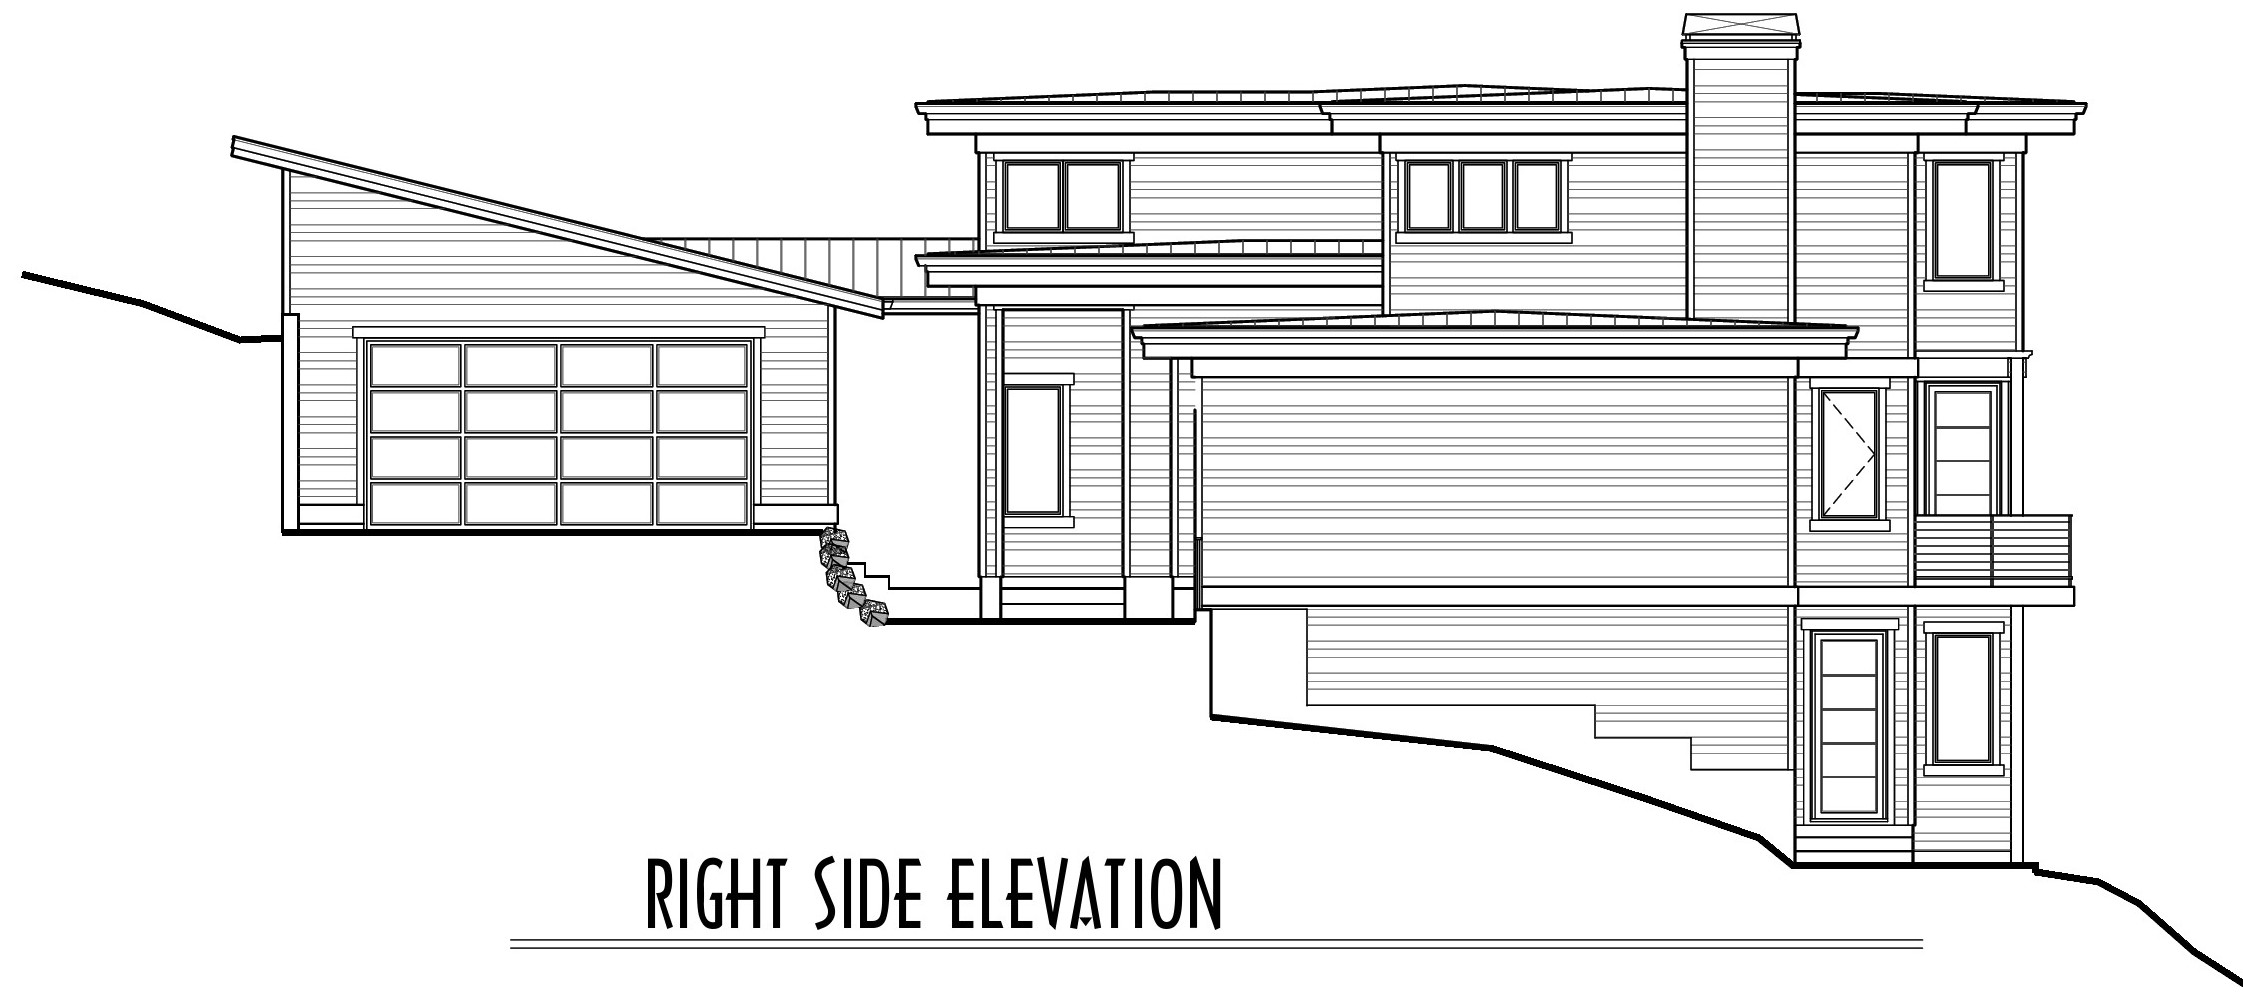 Awbrey Pointe - Lot 13 - Custom Duplex (PS-1550-18) - Final Plan SET-Side Elevation Sales.jpg